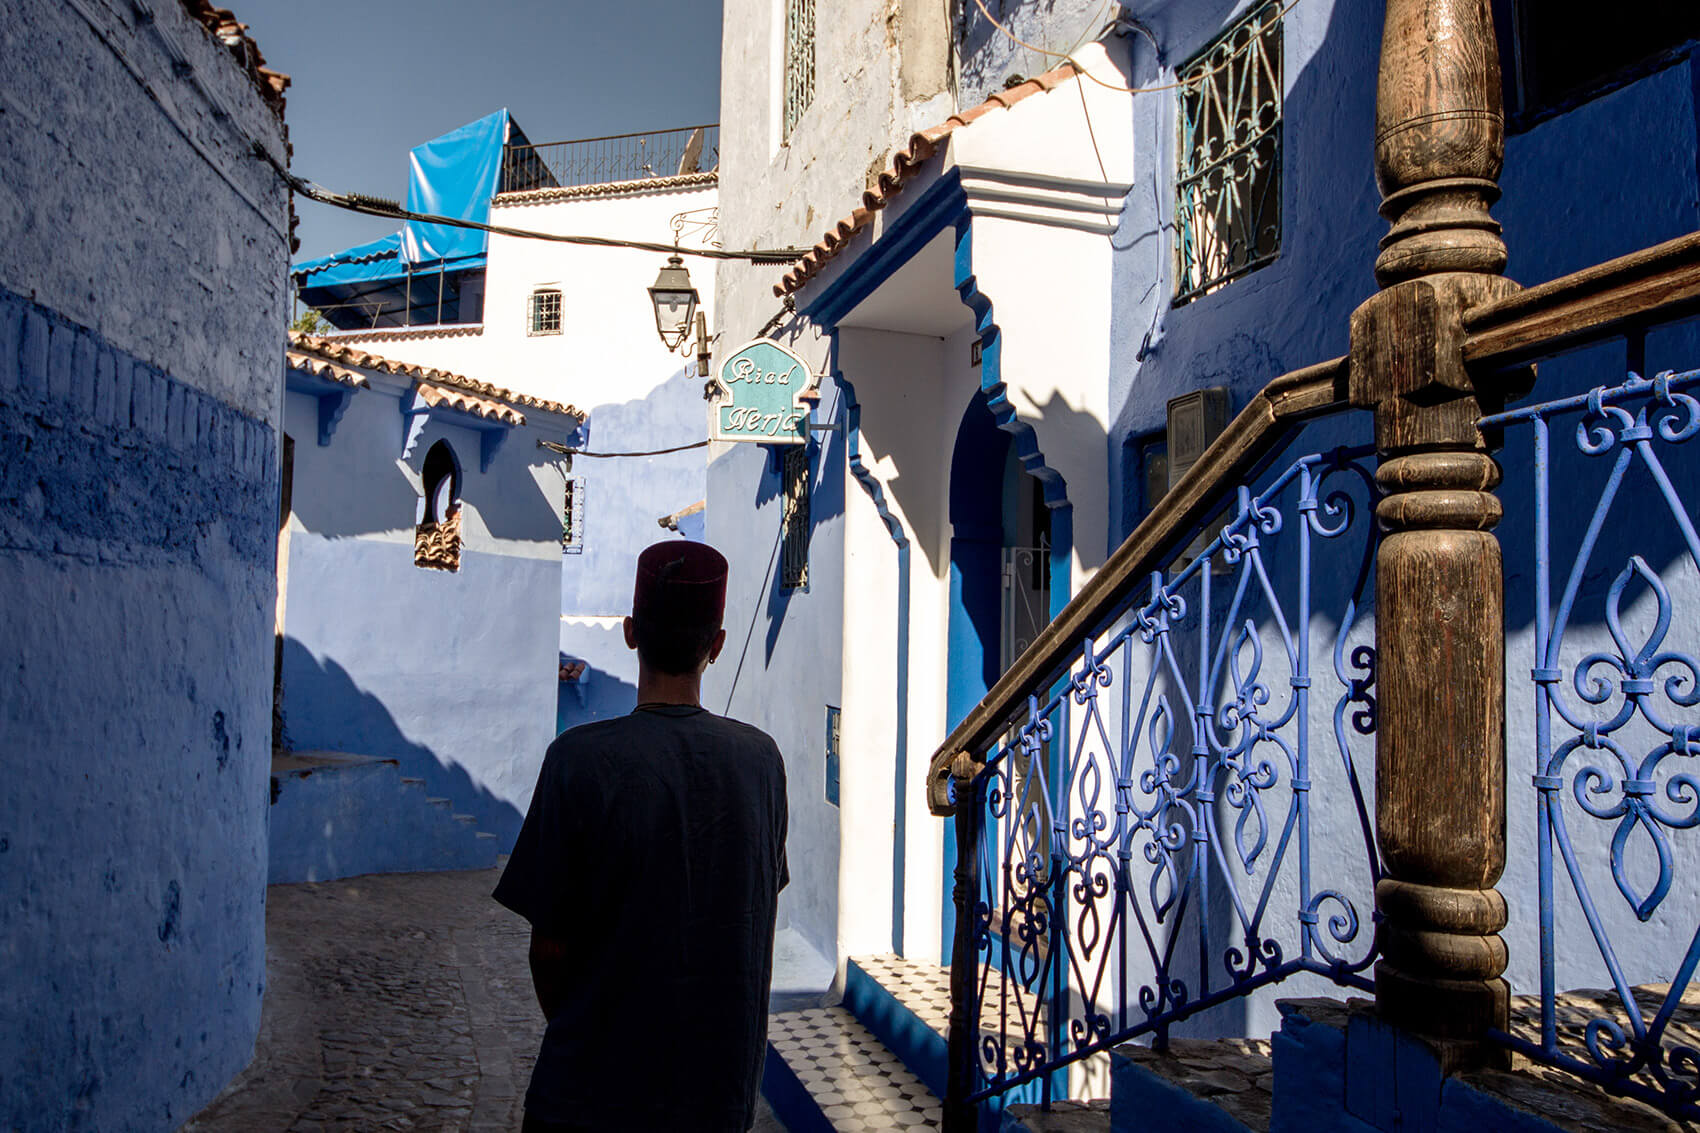 Alleyways of Chefchaouen, the Blue City in northern Morocco